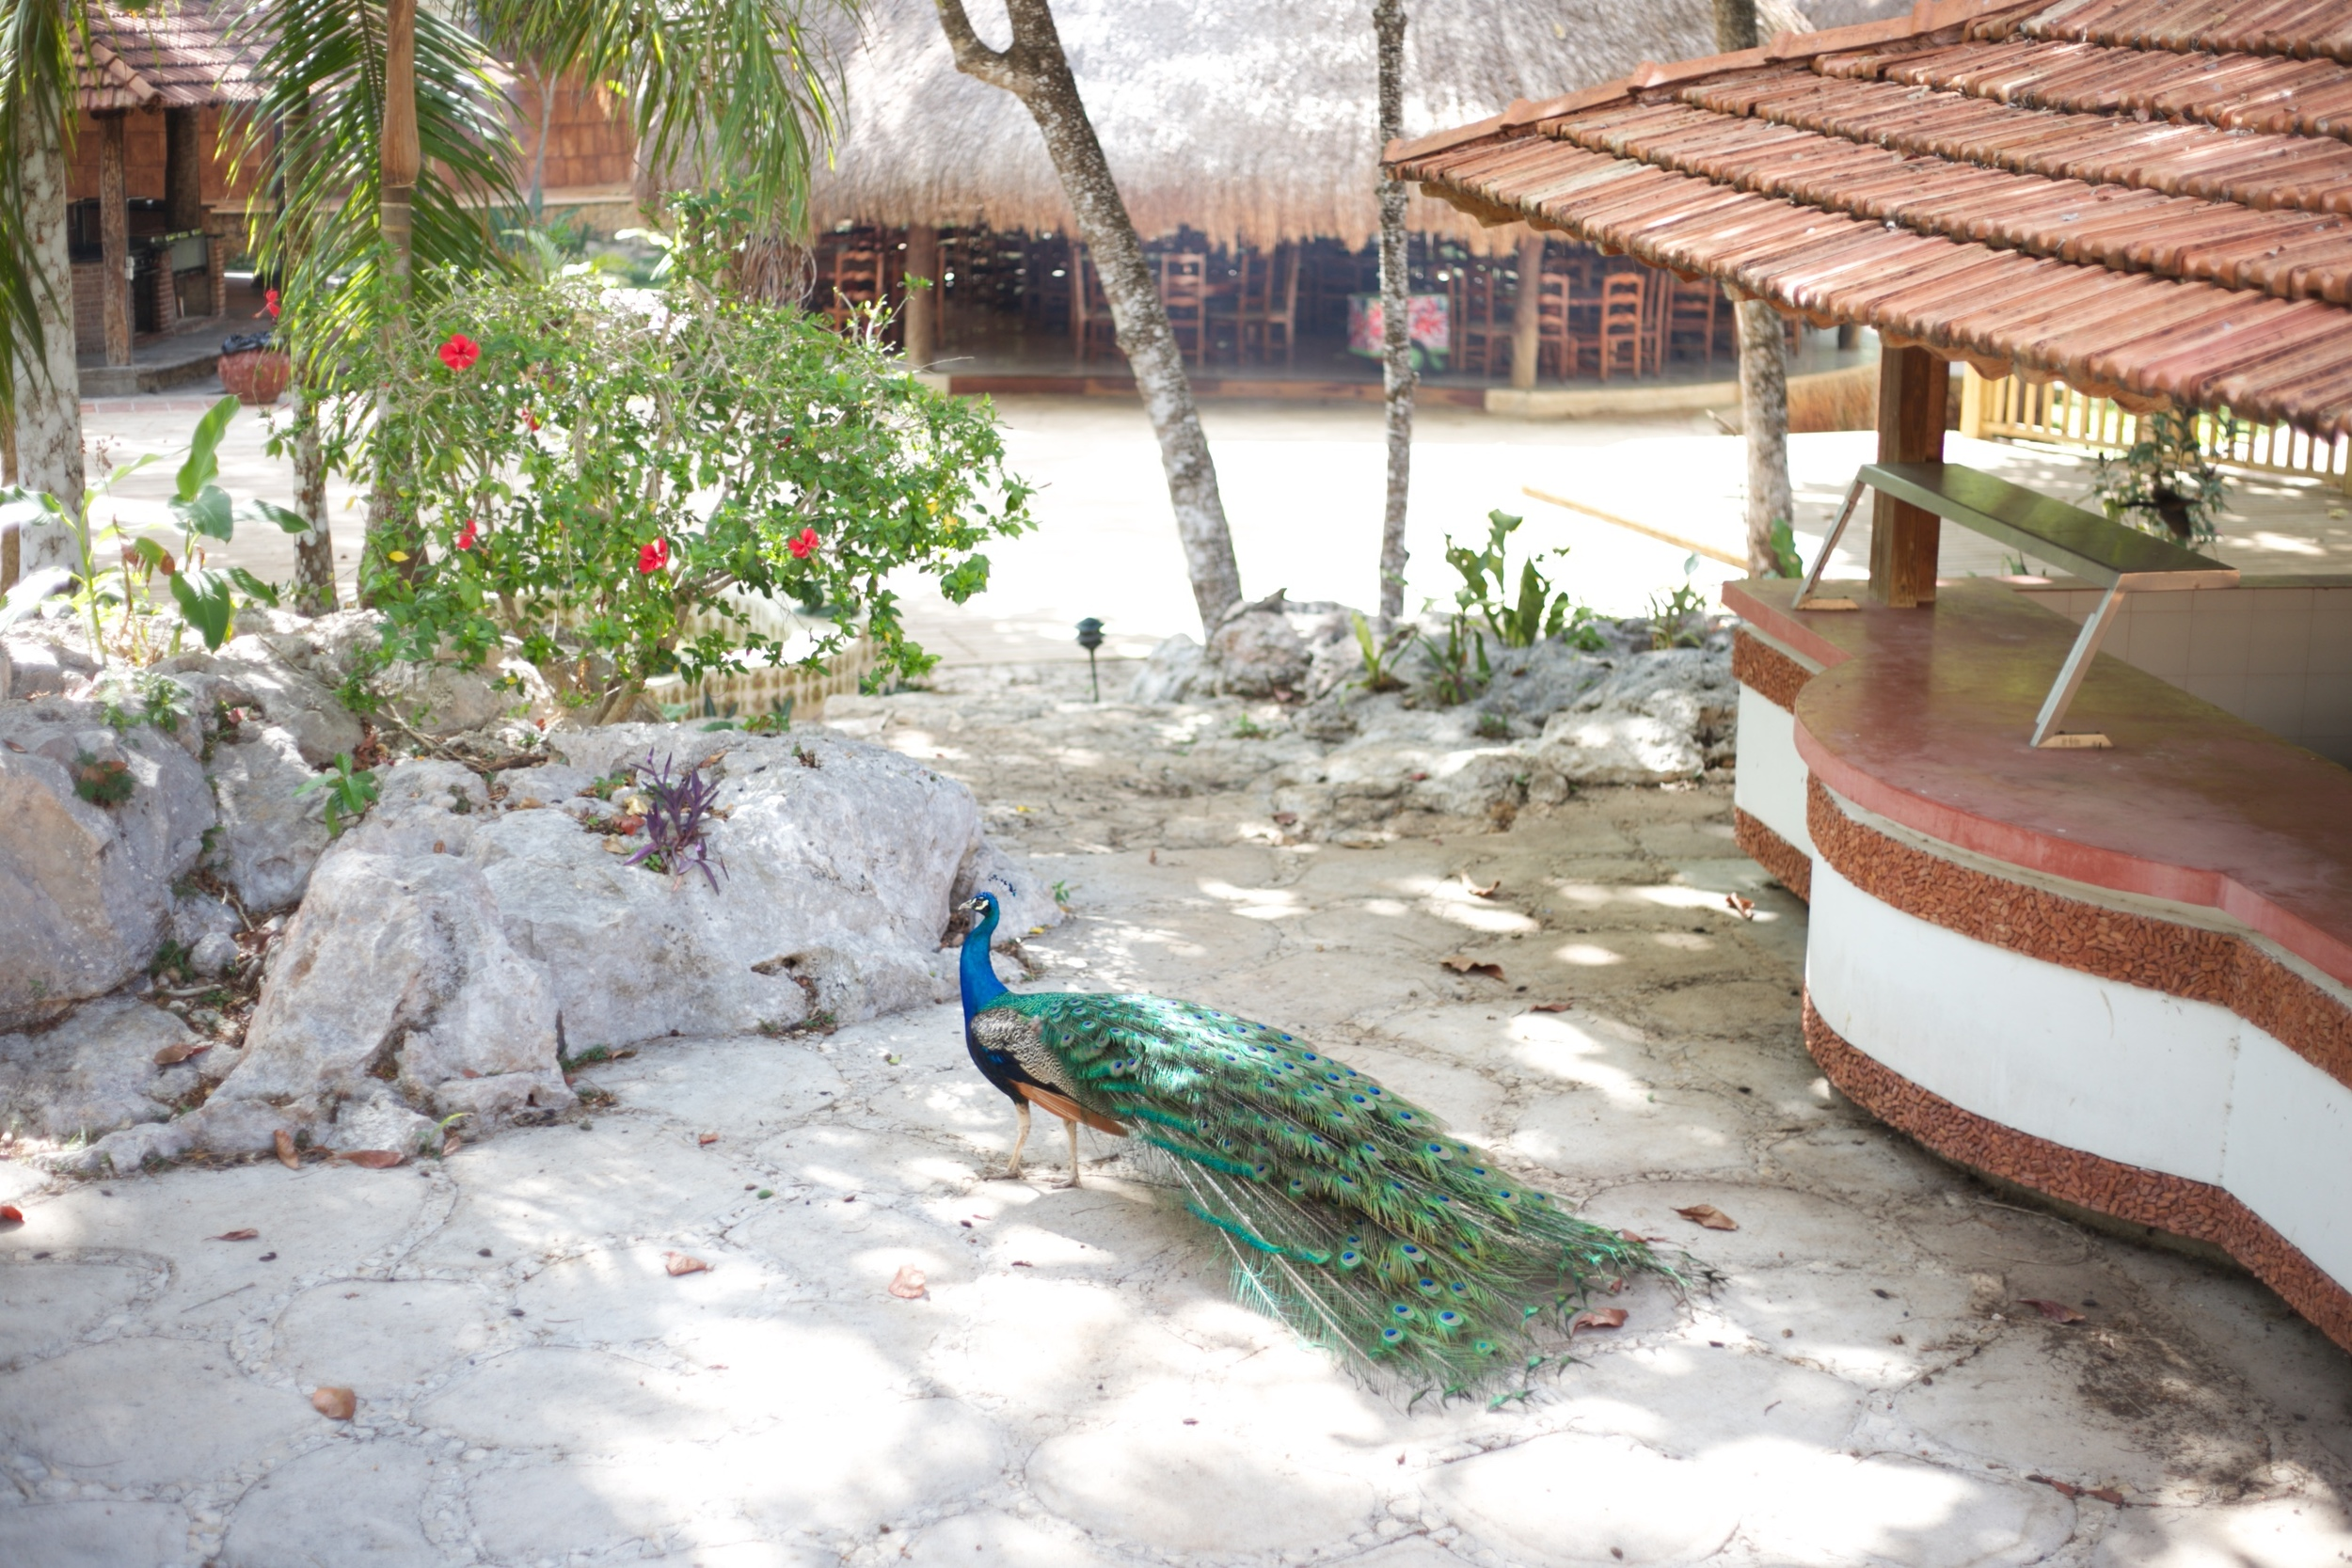 A peacock with its tail down.